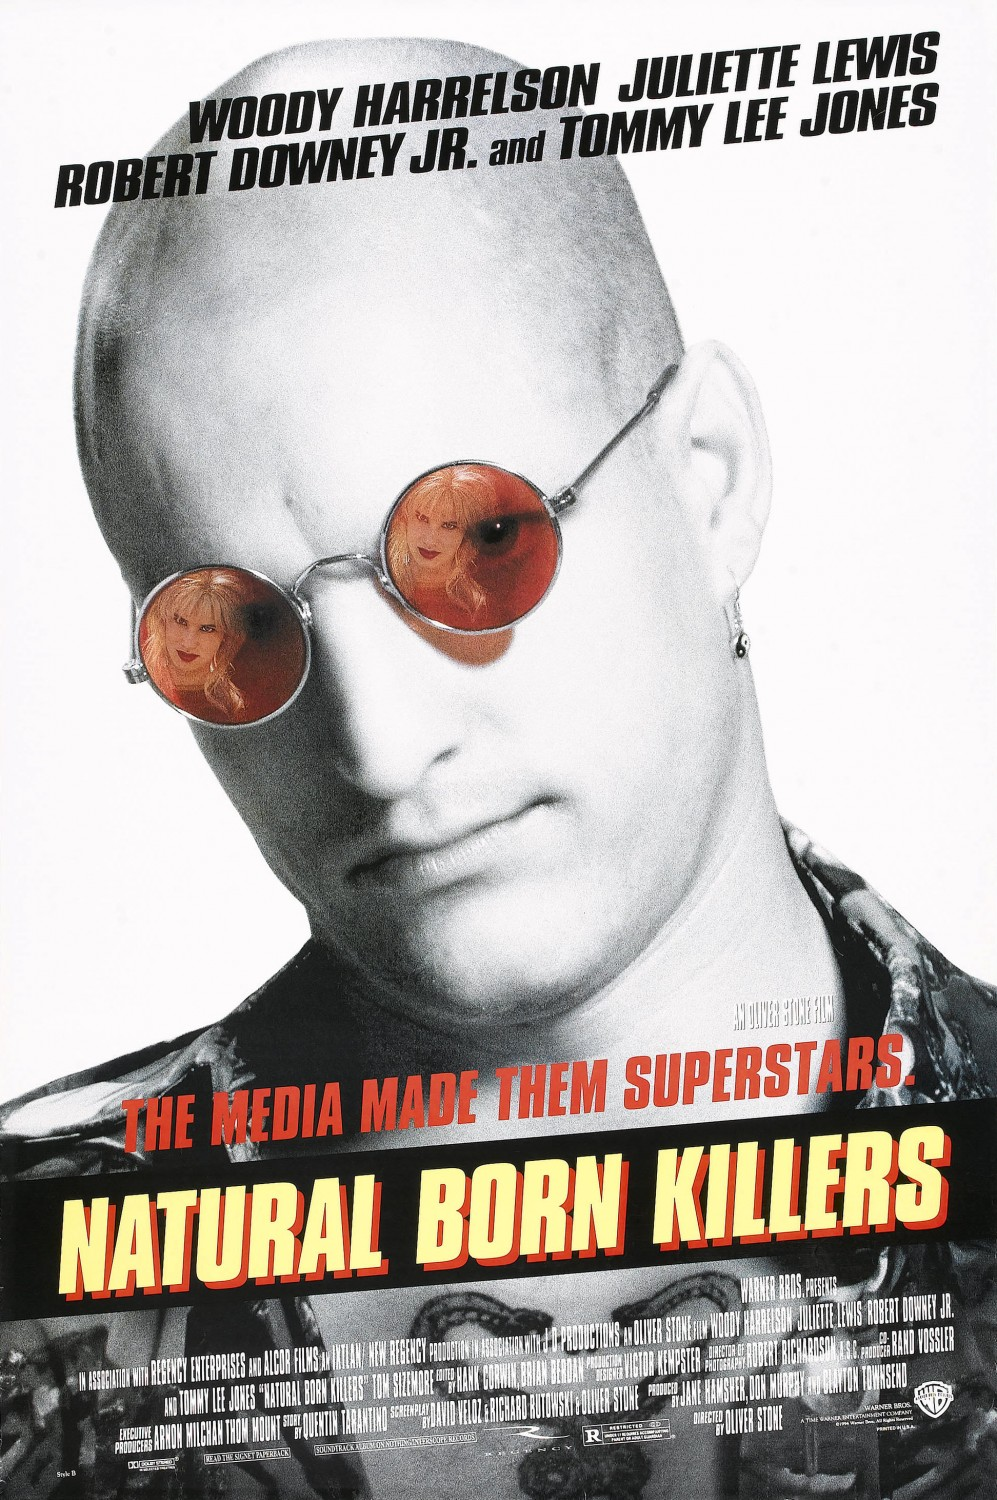 Extra Large Movie Poster Image for Natural Born Killers (#2 of 2)